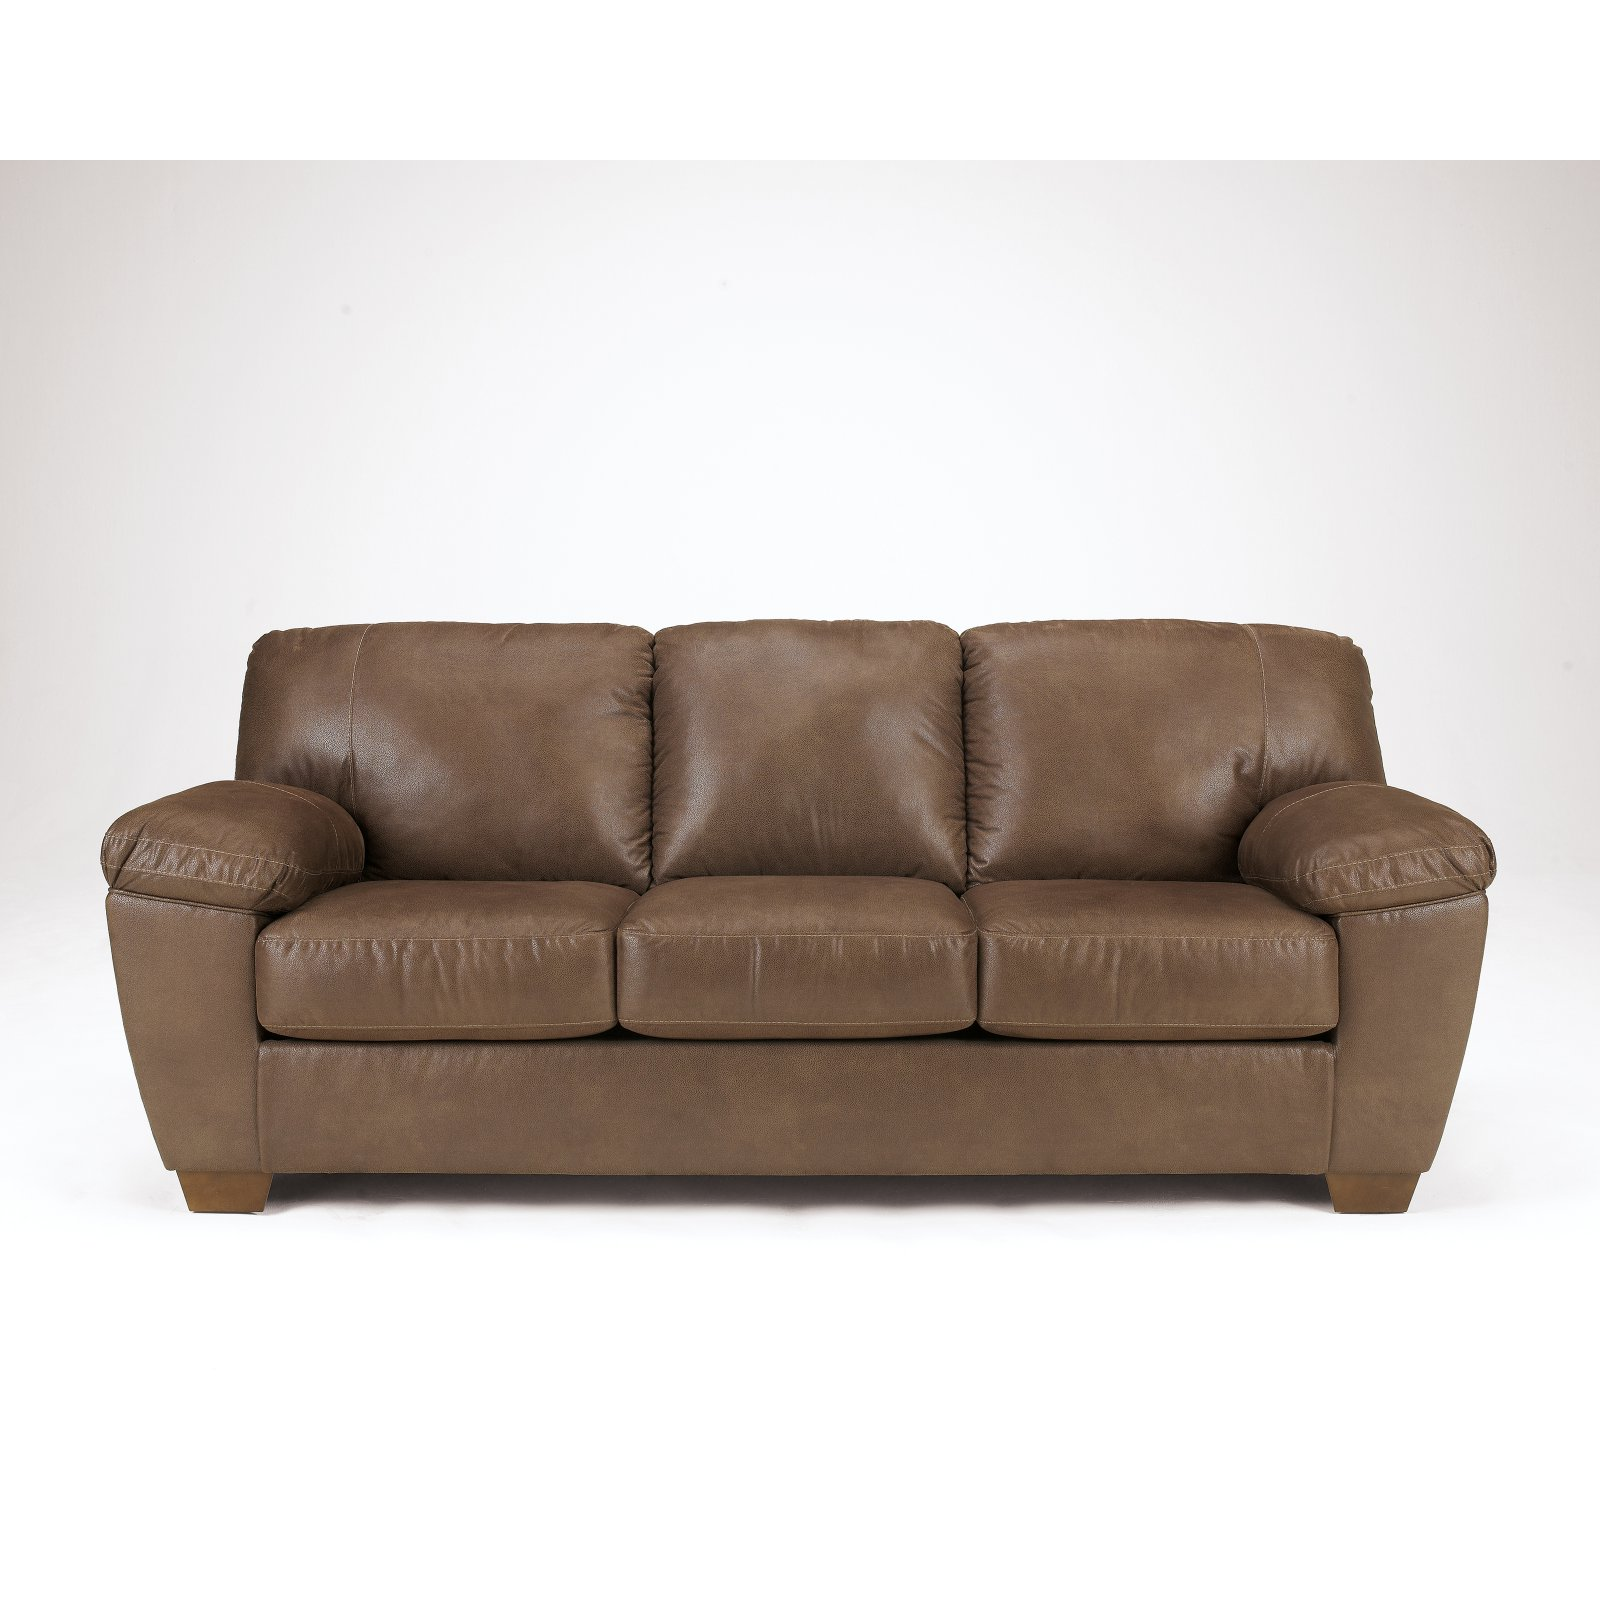 Signature Design by Ashley Amazon Sofa Walmart